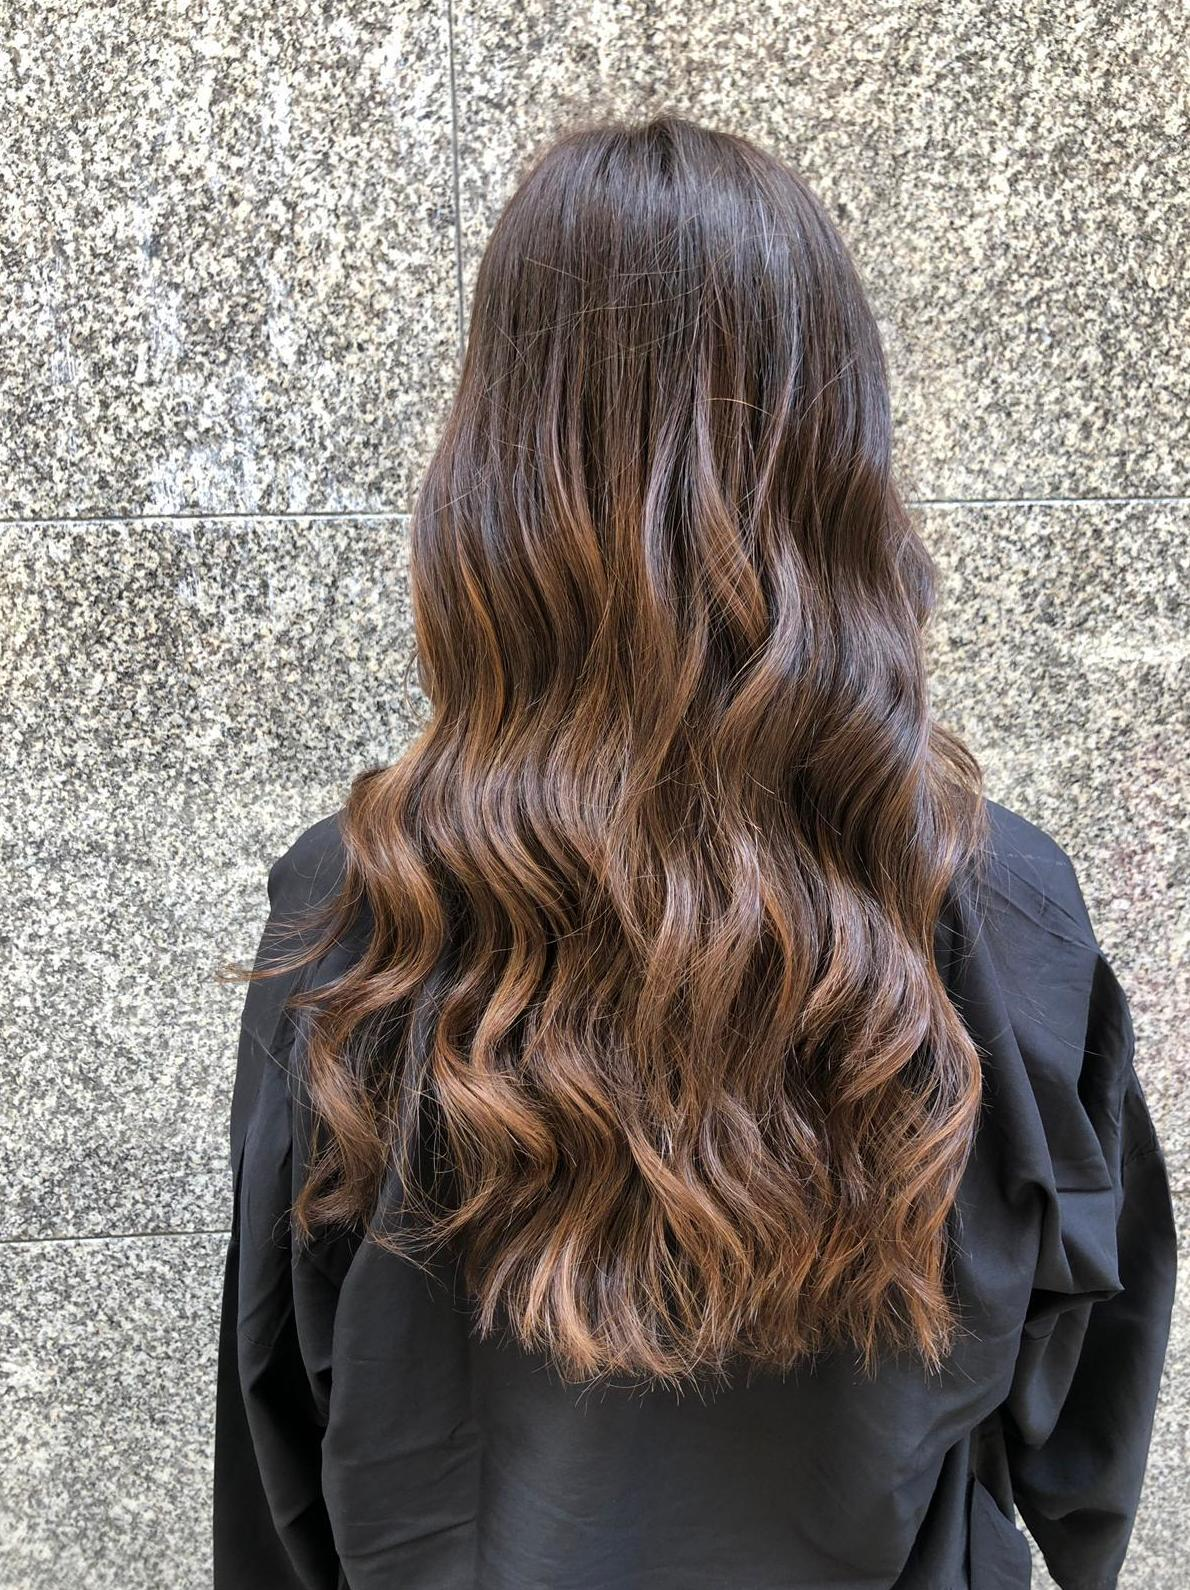 Mechas balayage color cobre Barcelona